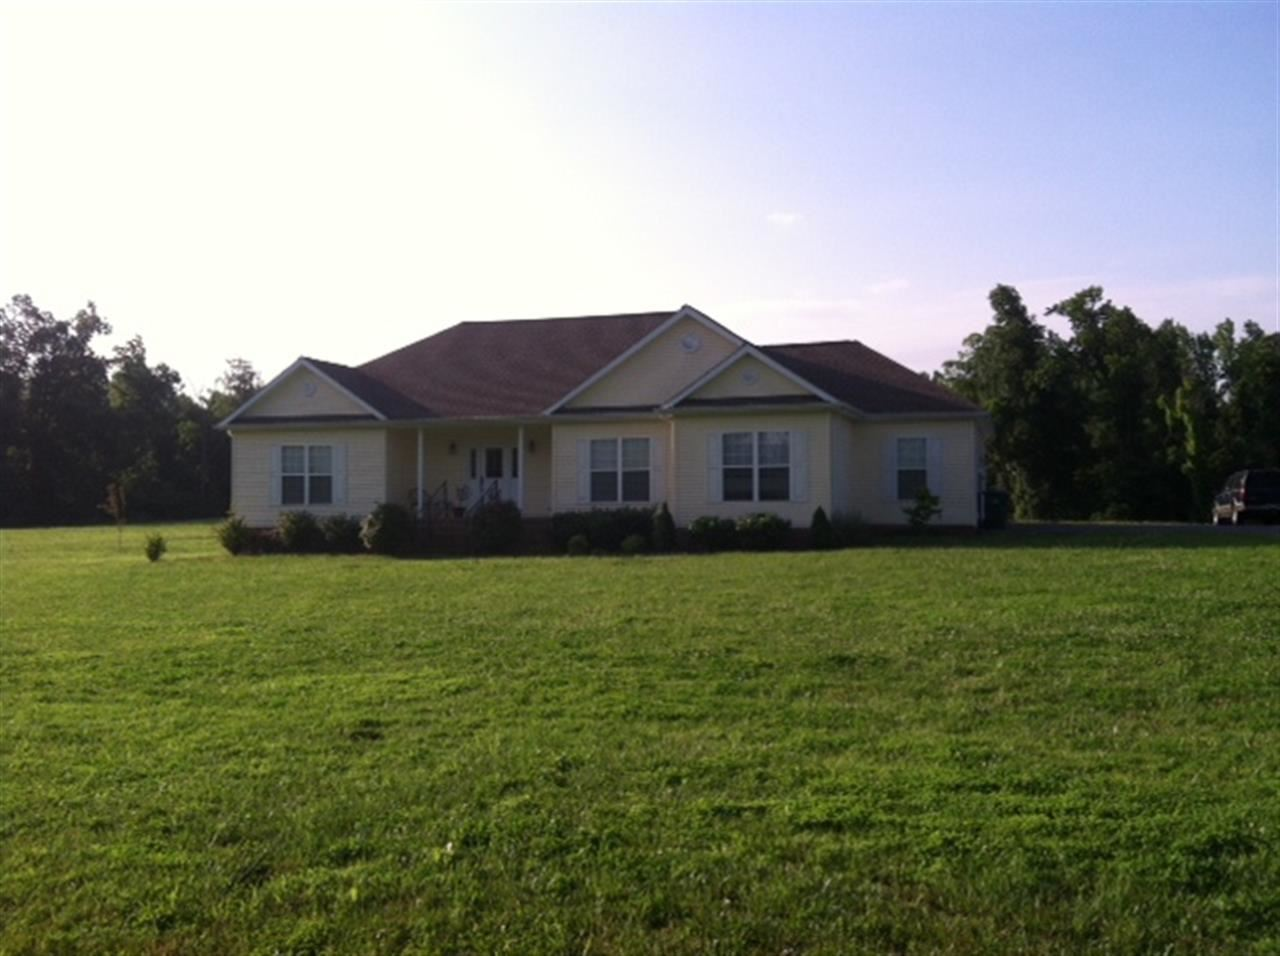 2 acres in Paducah, Kentucky